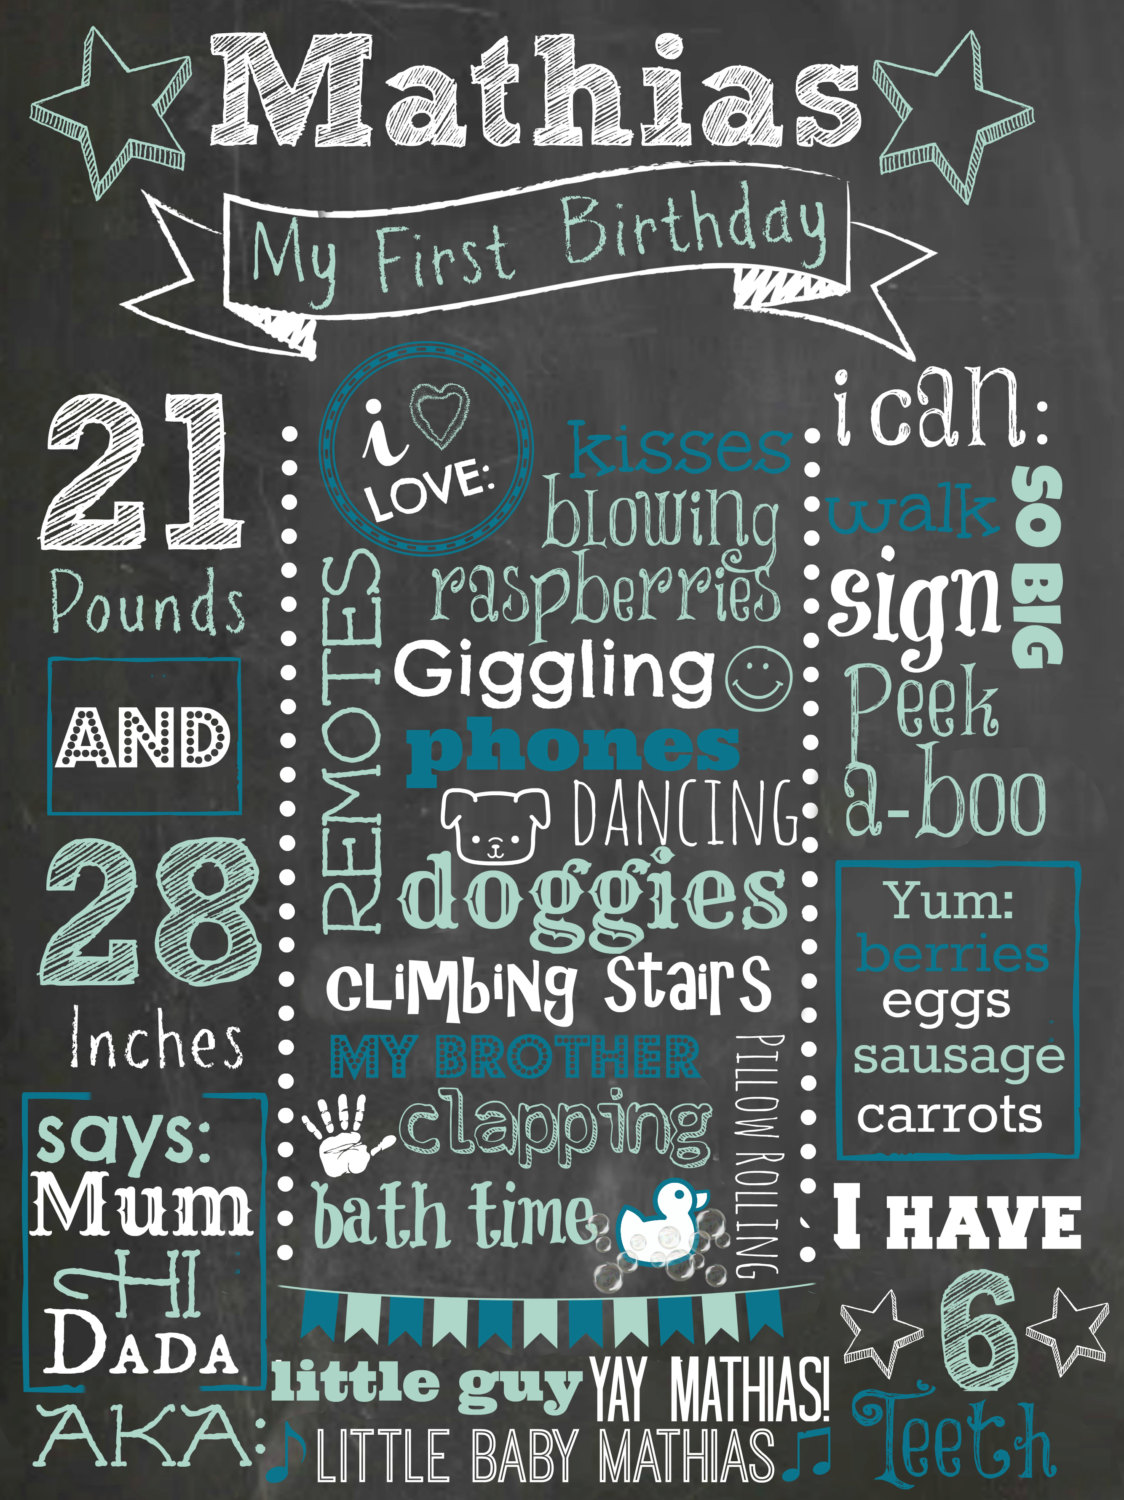 Minnie Mouse First Birthday Colored Chalkboard Poster. Basketball Camp Flyer. Troy University Graduate Programs. Contractor Business Cards. Scandinavian Wall Art. Wedding Invitation Template Download. Best College Student Resume Sample. 6th Grade Graduation Gift Ideas. Blank Funeral Program Template